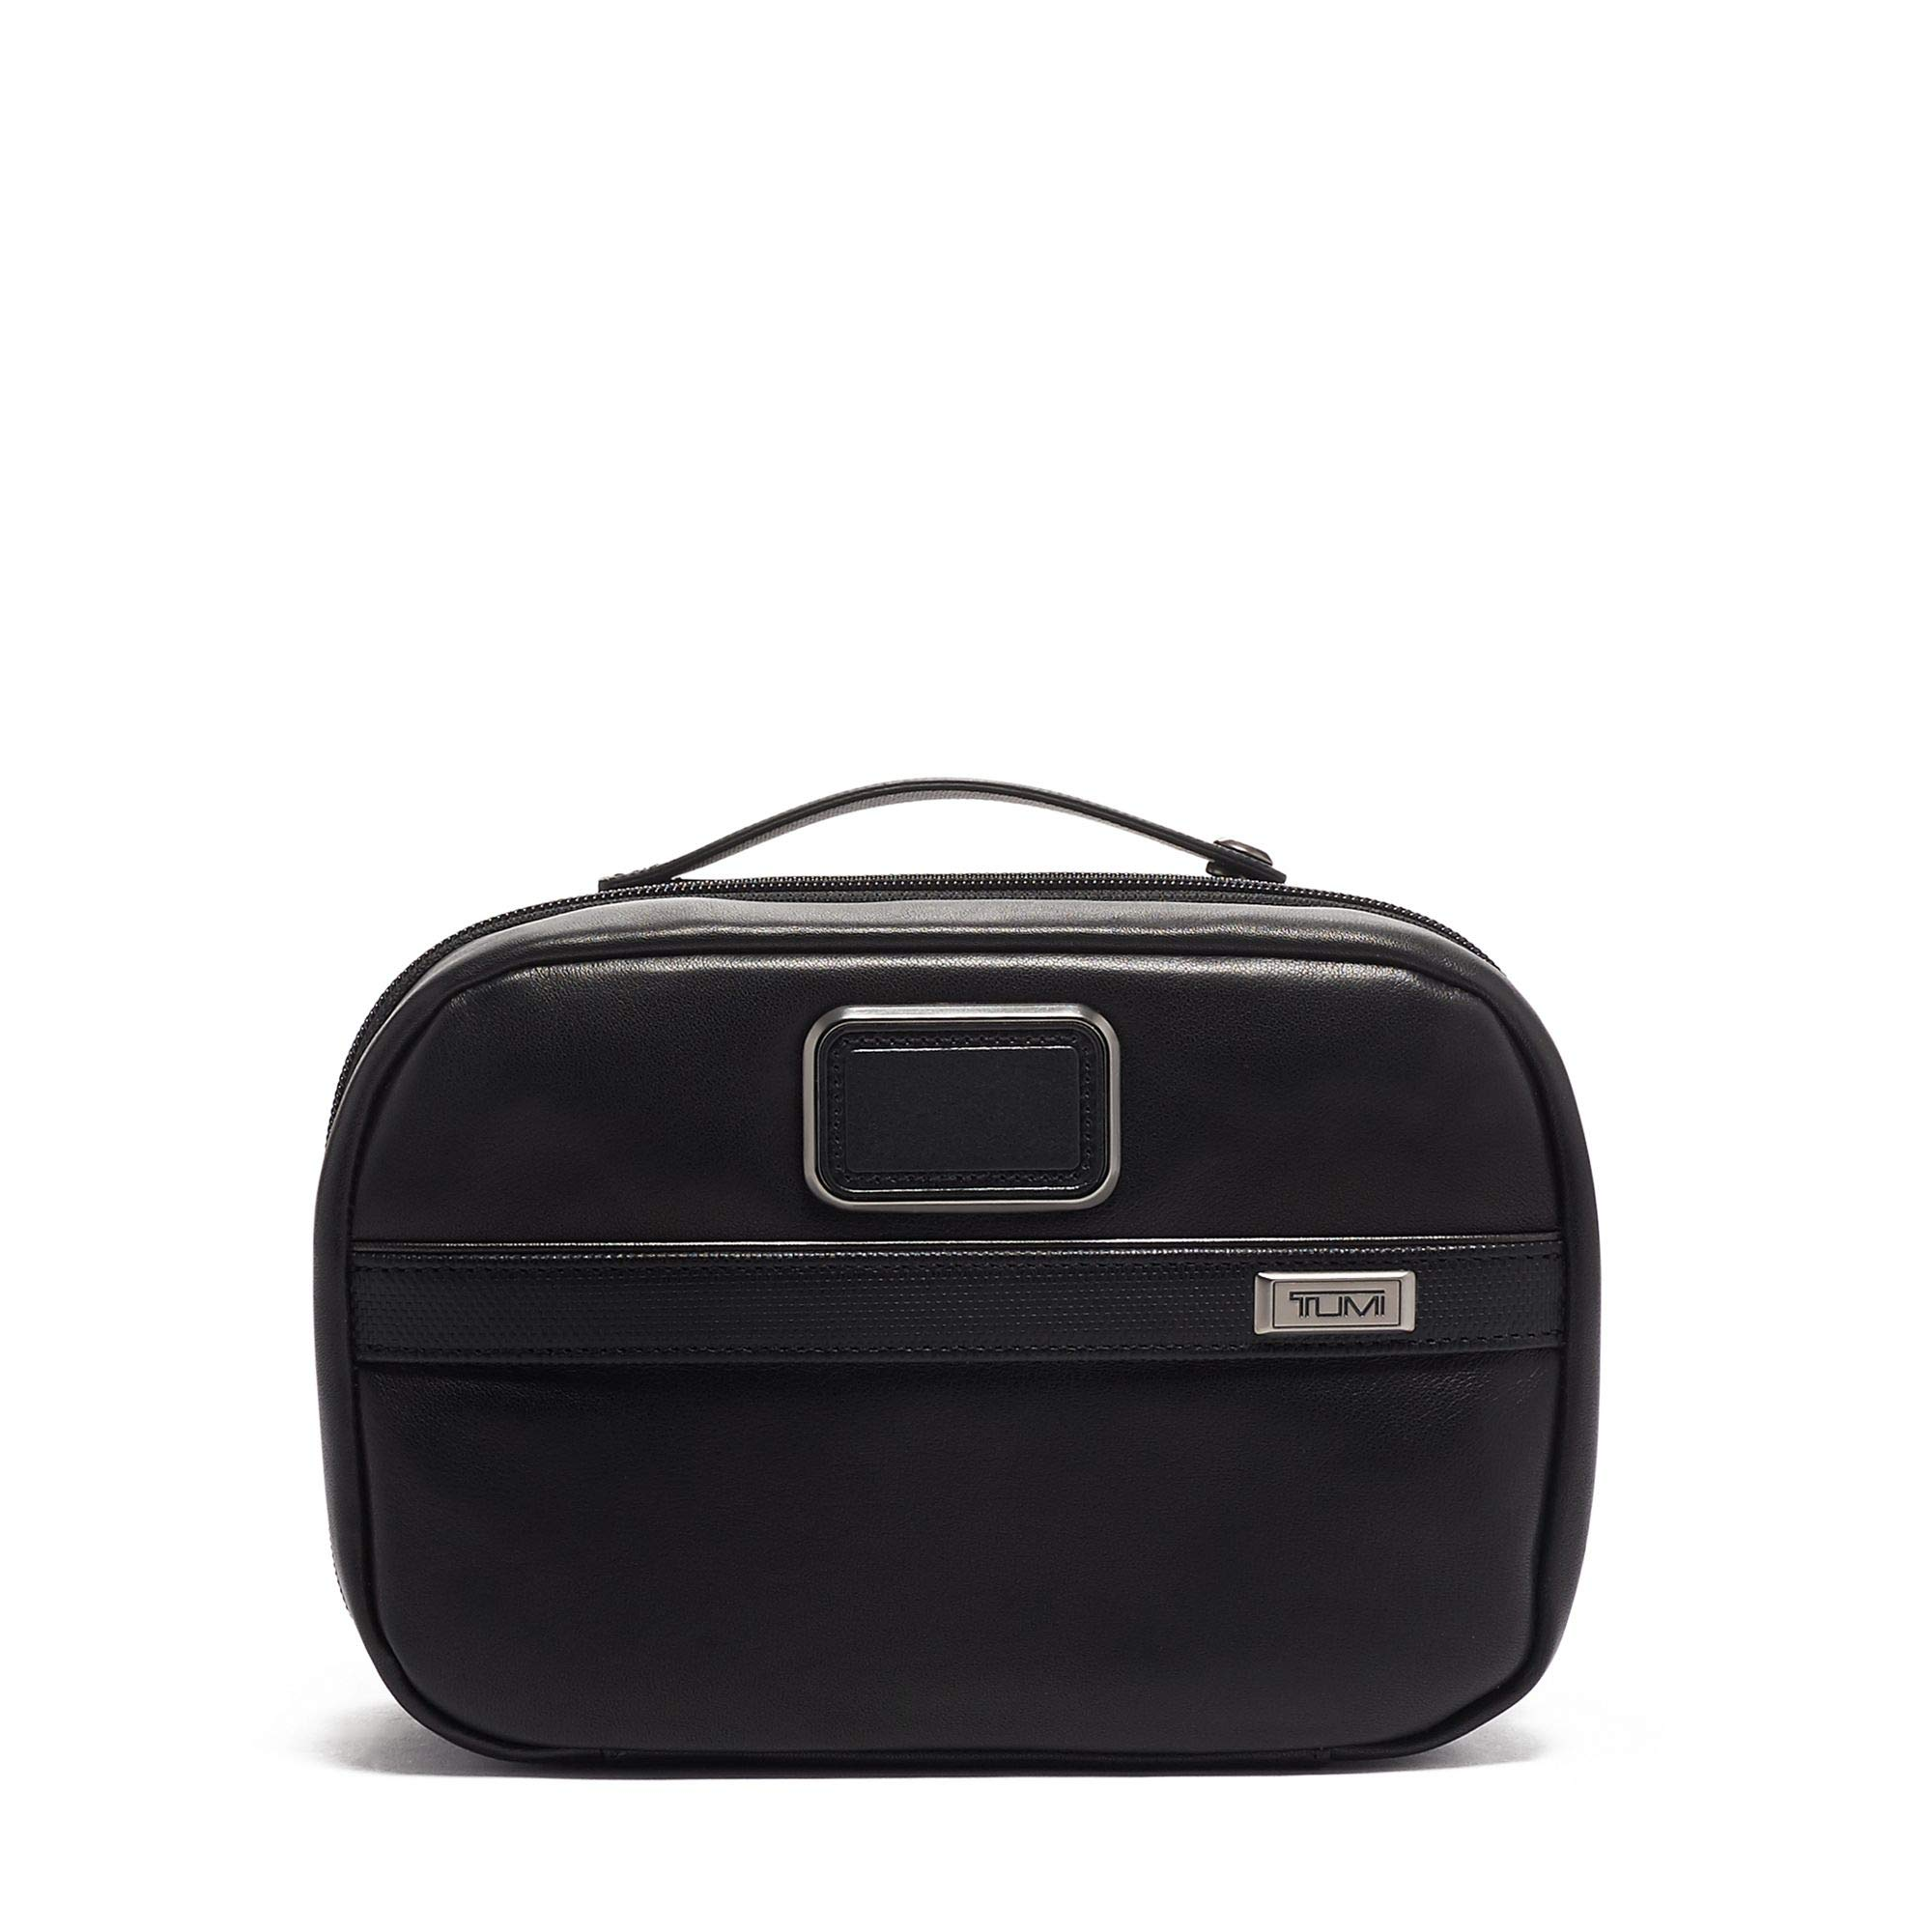 TUMI - Alpha 3 Leather Split Travel Kit - Luggage Accessories Toiletry Bag for Men and Women - Black